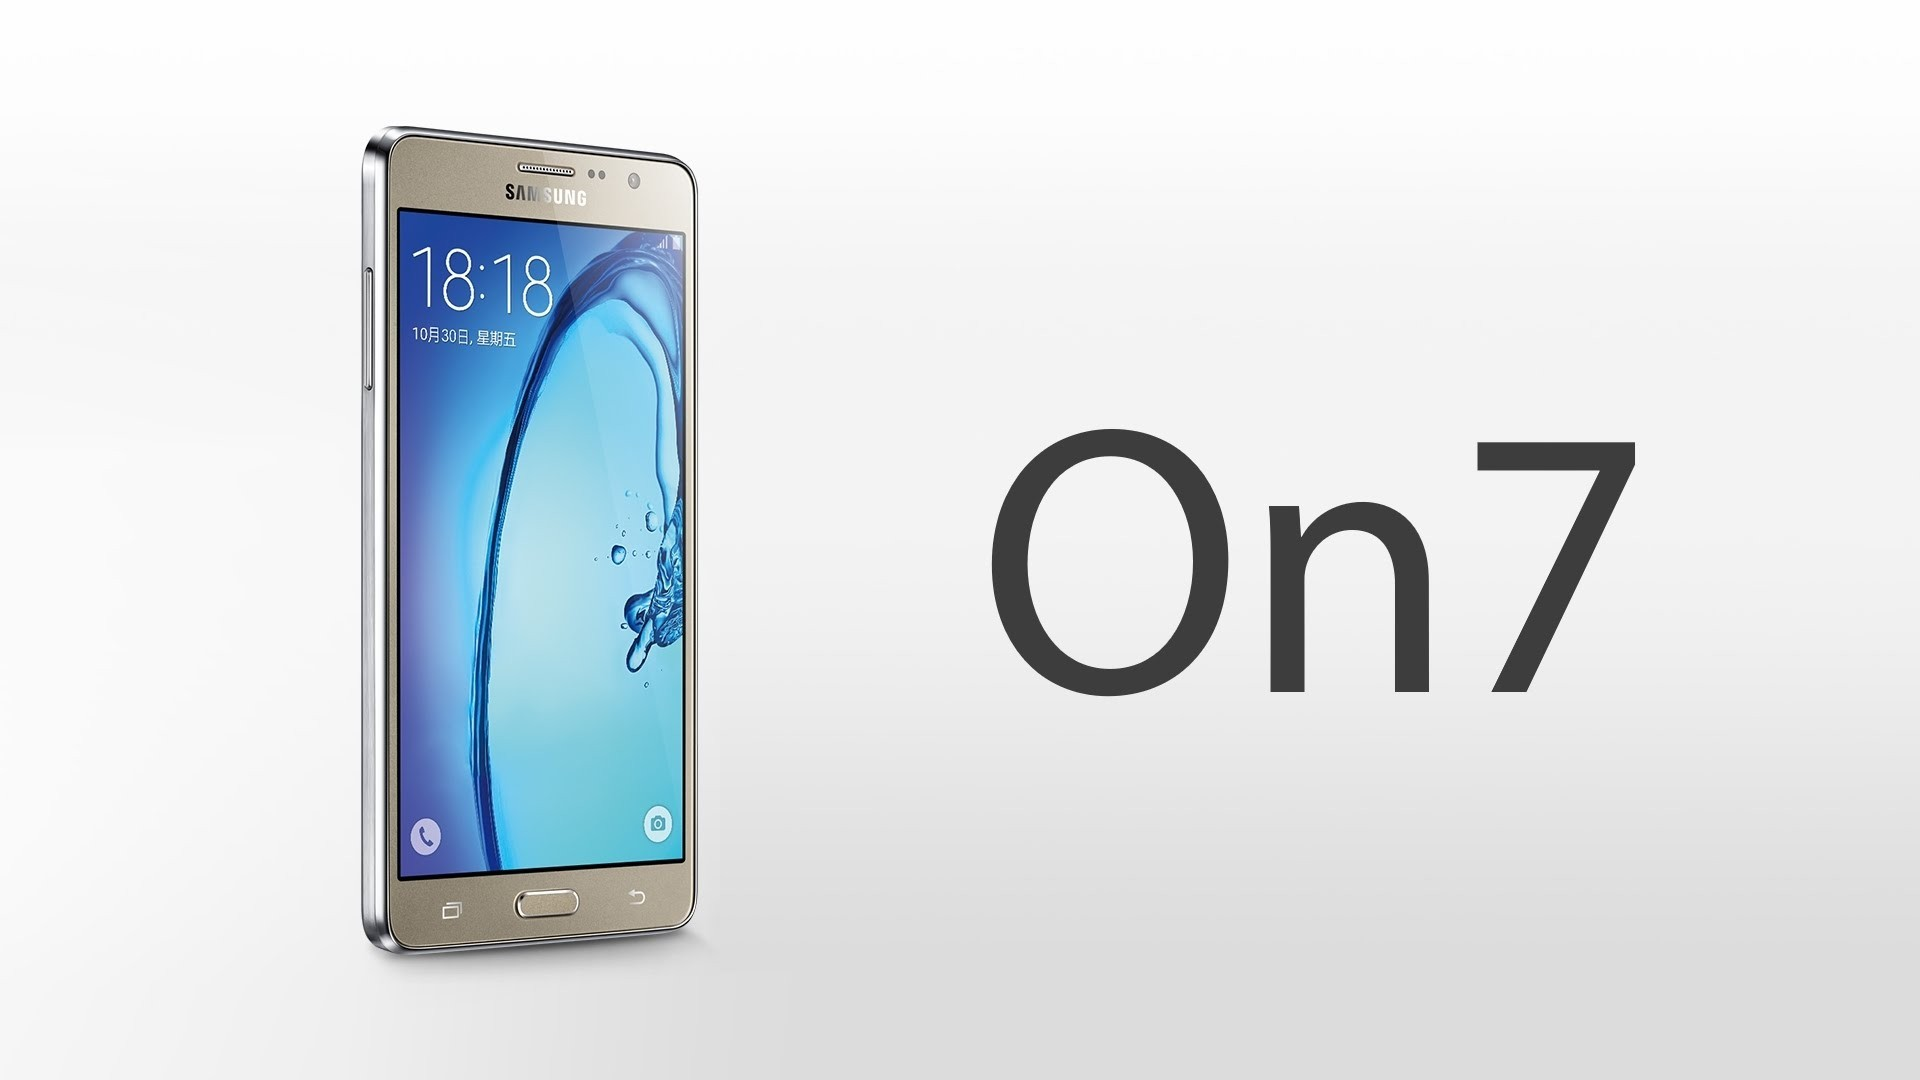 Samsung Galaxy On7 - Samsung On7 Price In Myanmar , HD Wallpaper & Backgrounds